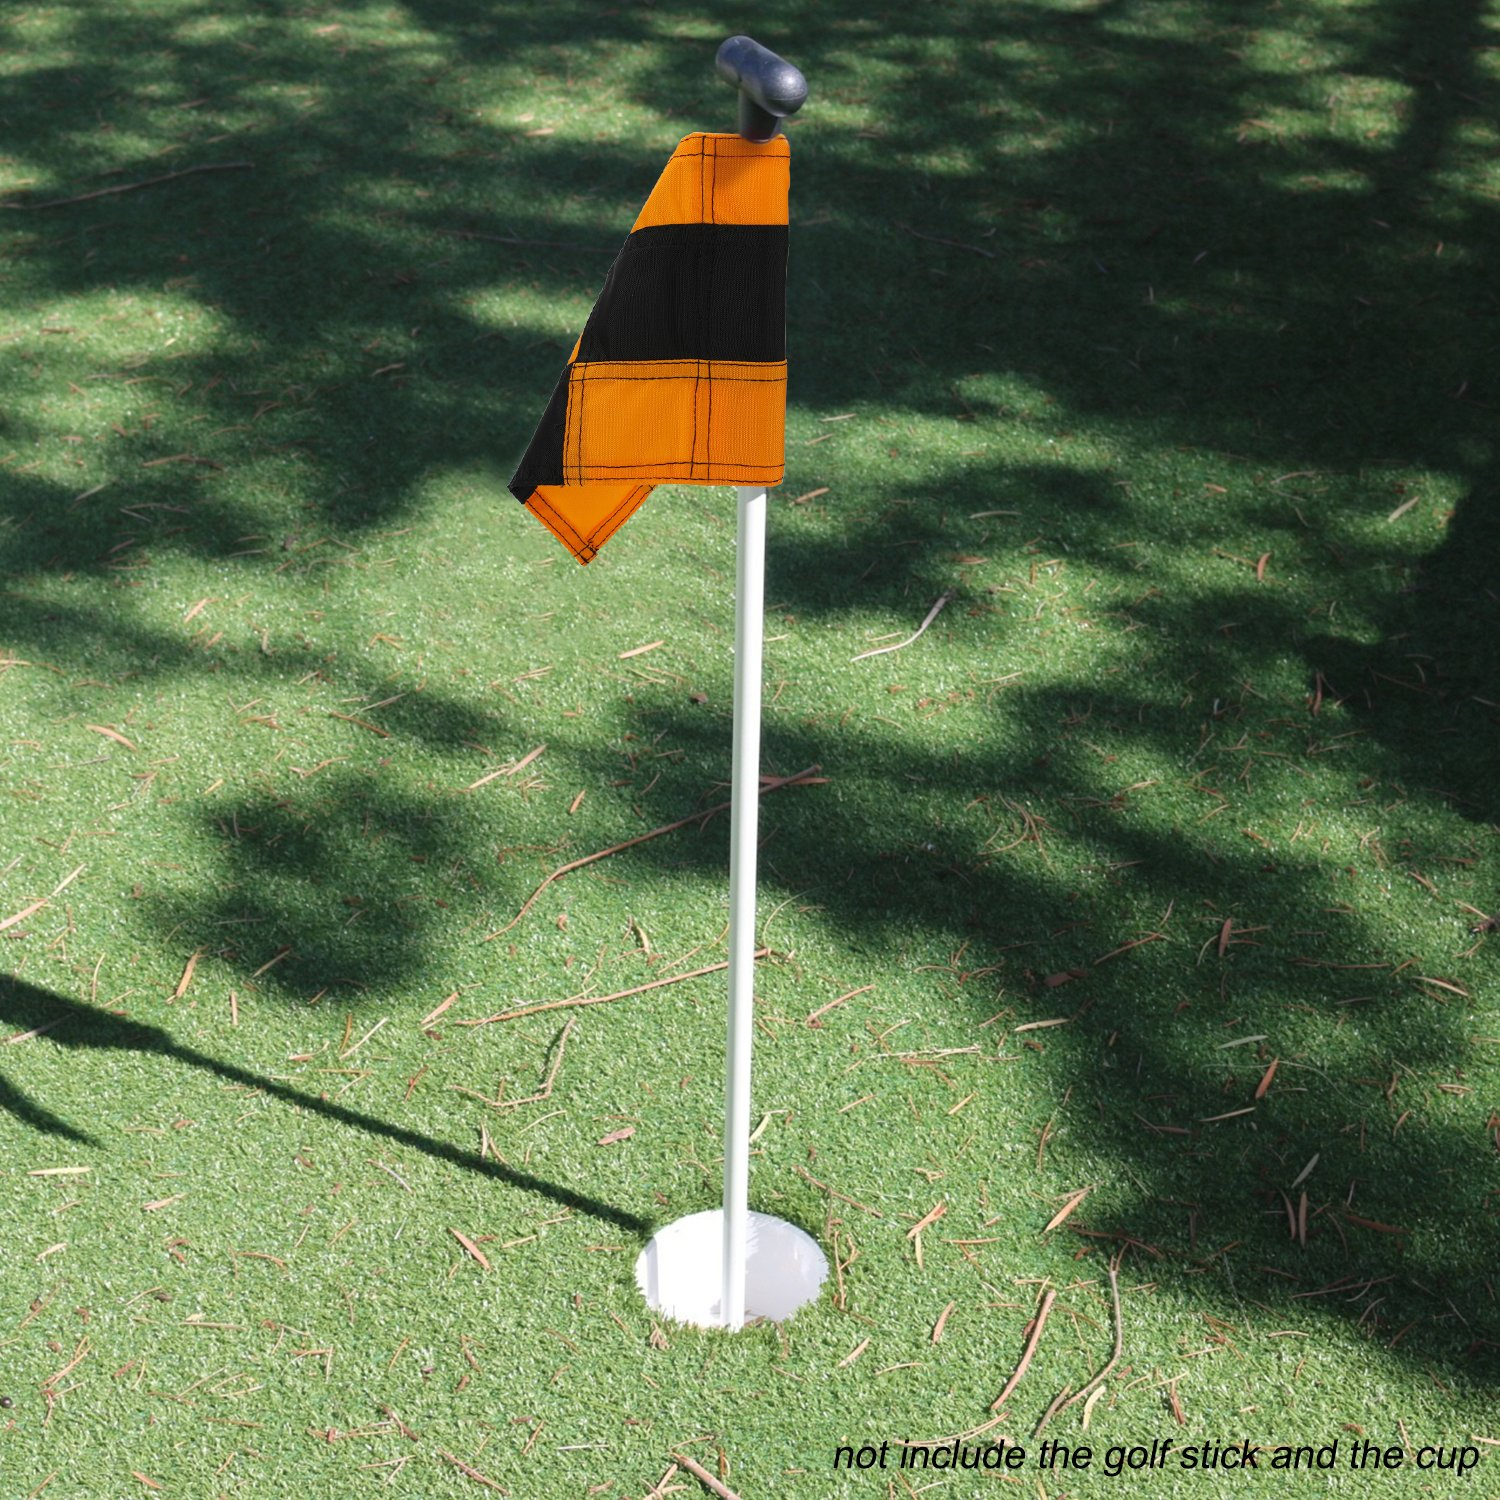 KONDAY Golf Flag,Practice Green Golf Flags, Solid Nylon and Checkered Traning Golf Putting Green Flags, Indoor Outdoor Backyard Garden Portable Golf Target flags by KONDAY (Image #7)